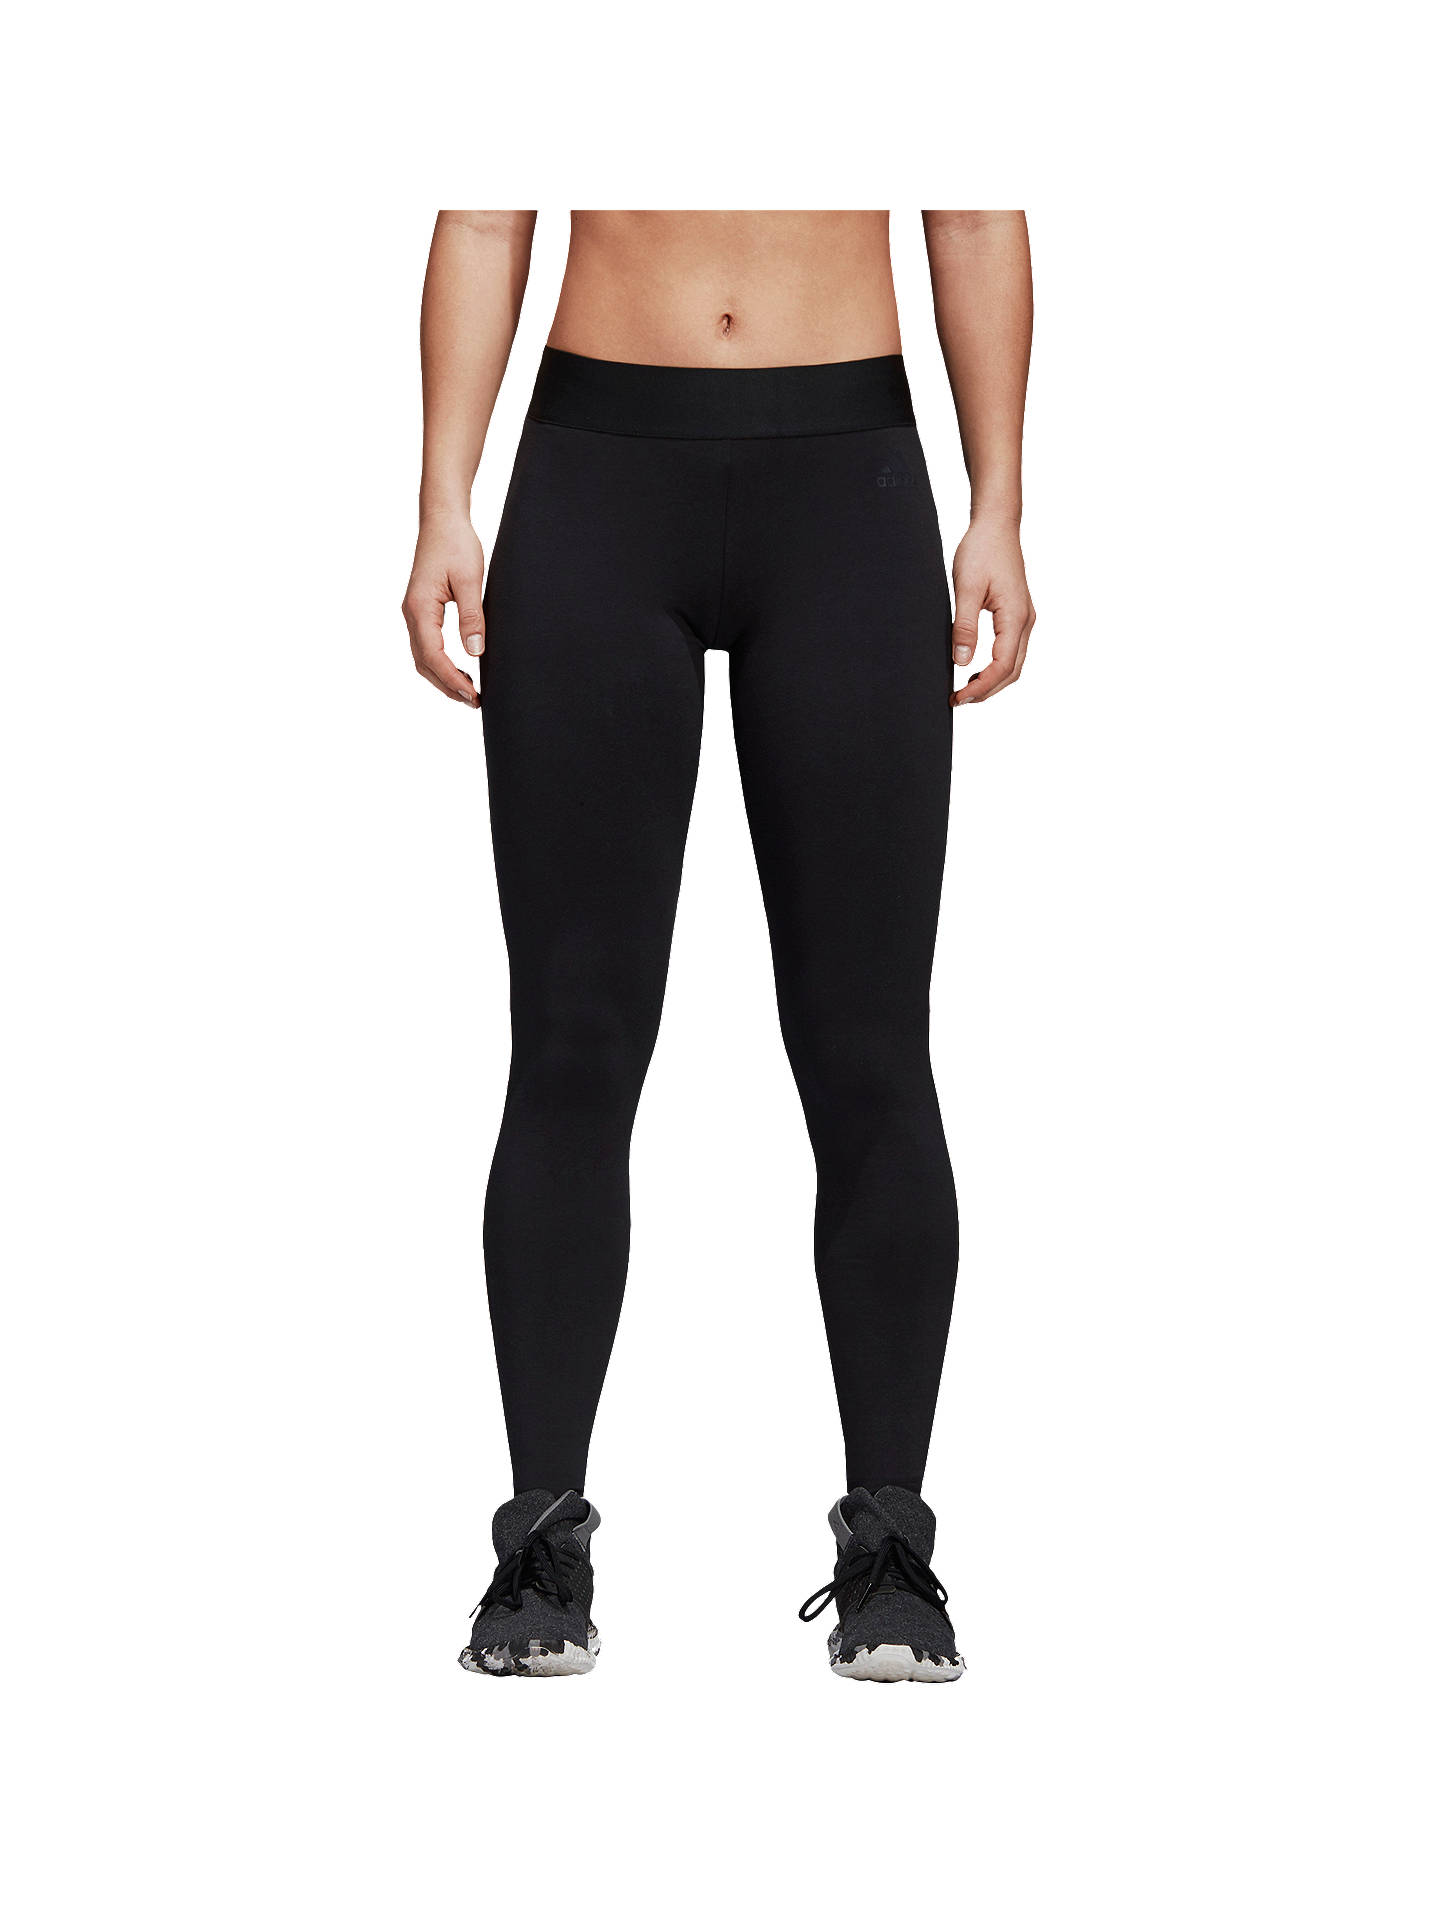 Buyadidas ID Mesh Training Tights, Black, XS Online at johnlewis.com